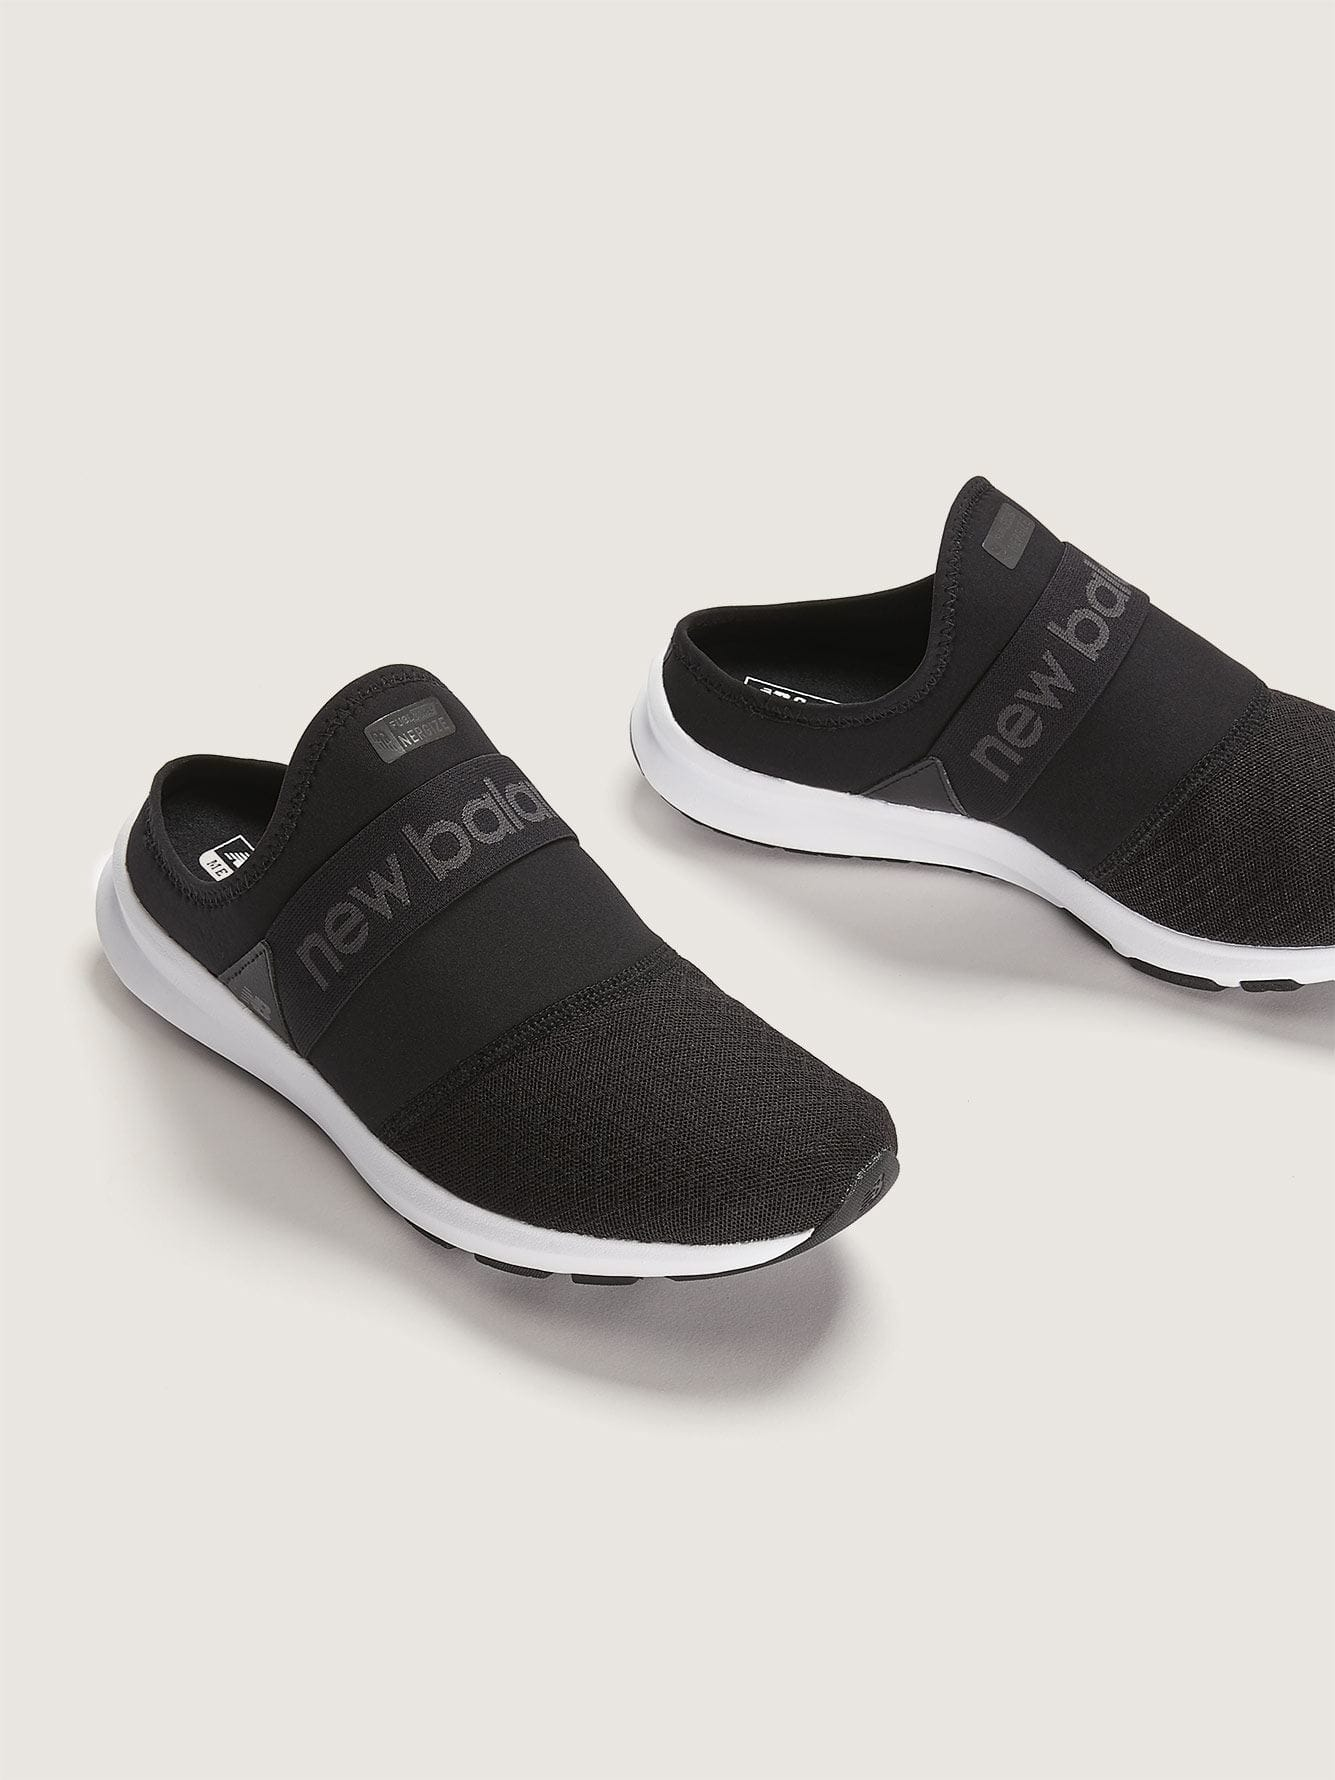 New Balance, Fuelcore Nergize - Mules pieds larges